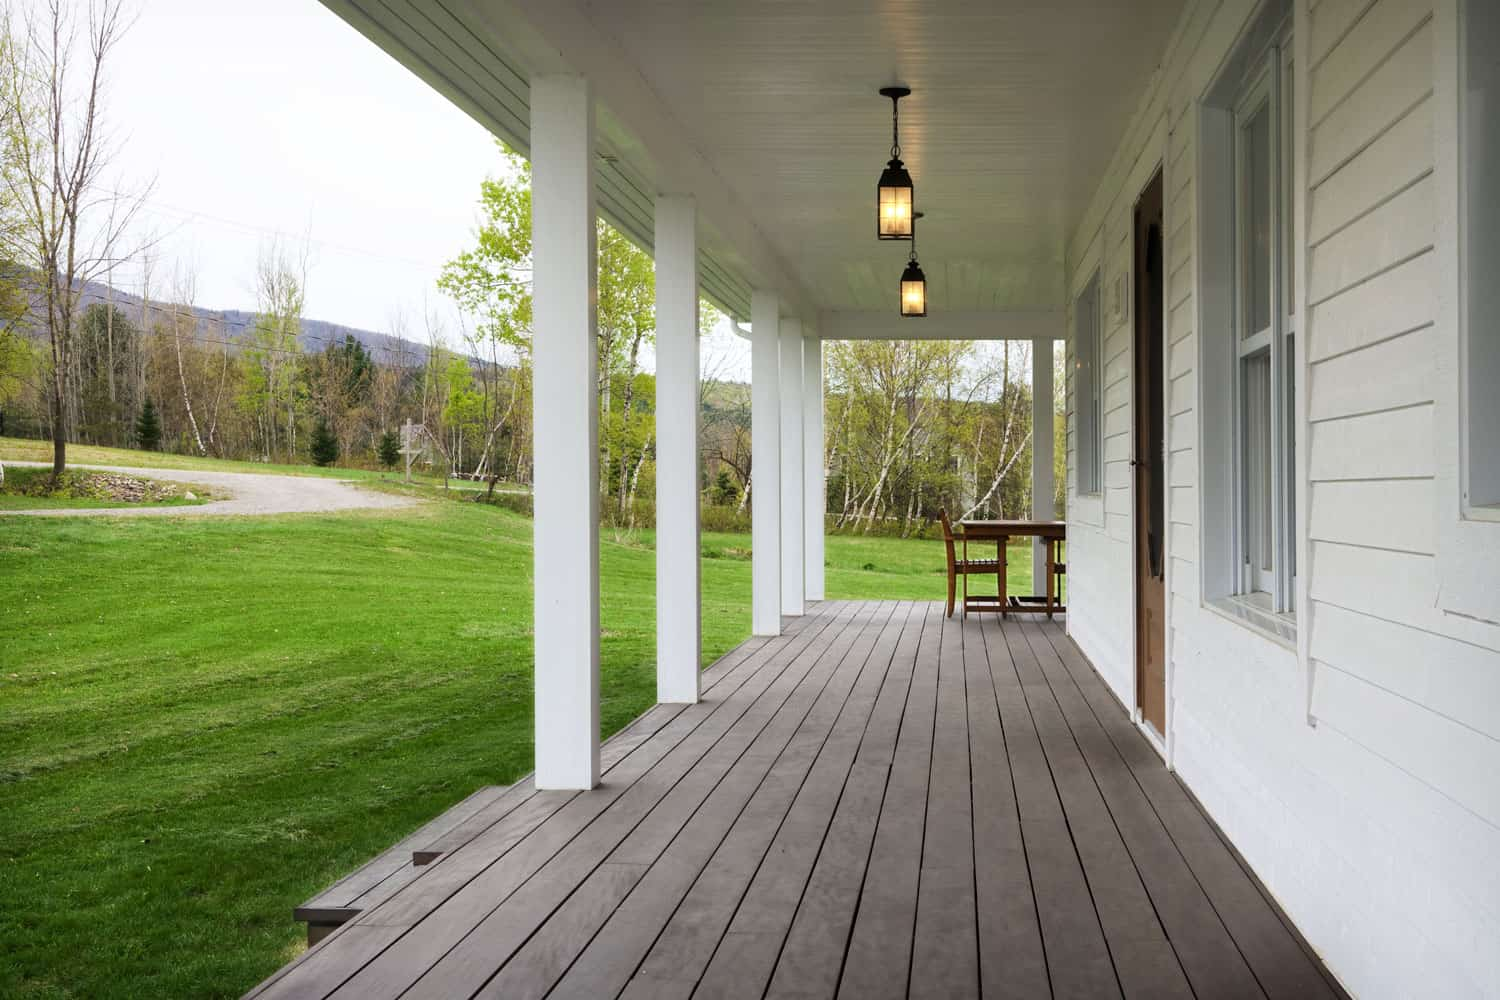 A front porch of a ranch style house with white painted sidings and a spacious newly mowed lawn